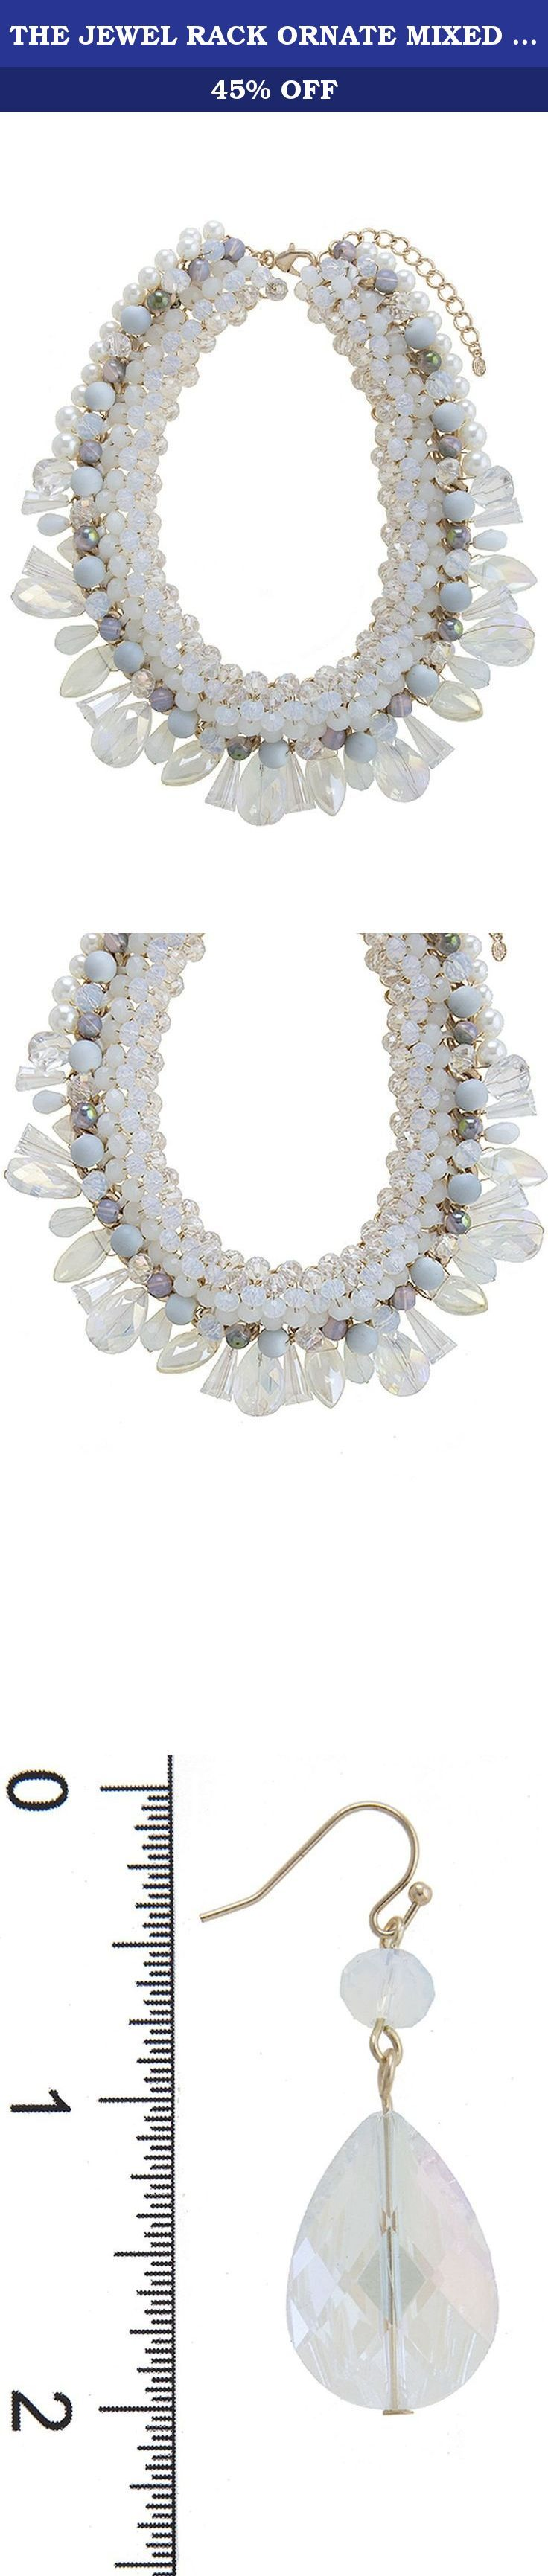 THE JEWEL RACK ORNATE MIXED BEADED BIB NECKLACE SET. FASHION DESTINATION PRESENTS THE JEWEL RACK ORNATE MIXED BEADED BIB NECKLACE SET. Buy brand-name Fashion Jewelry for everyday discount prices with Fashion Destination! Everyday LOW shipping *. Read product reviews on Fashion Necklaces, Fashion Bracelets, Fashion Earrings & more. Shop the Fashion Destination store for a wide selection of rings, bracelets, necklaces, earrings and diamond jewelry. Whether you are searching for men's…